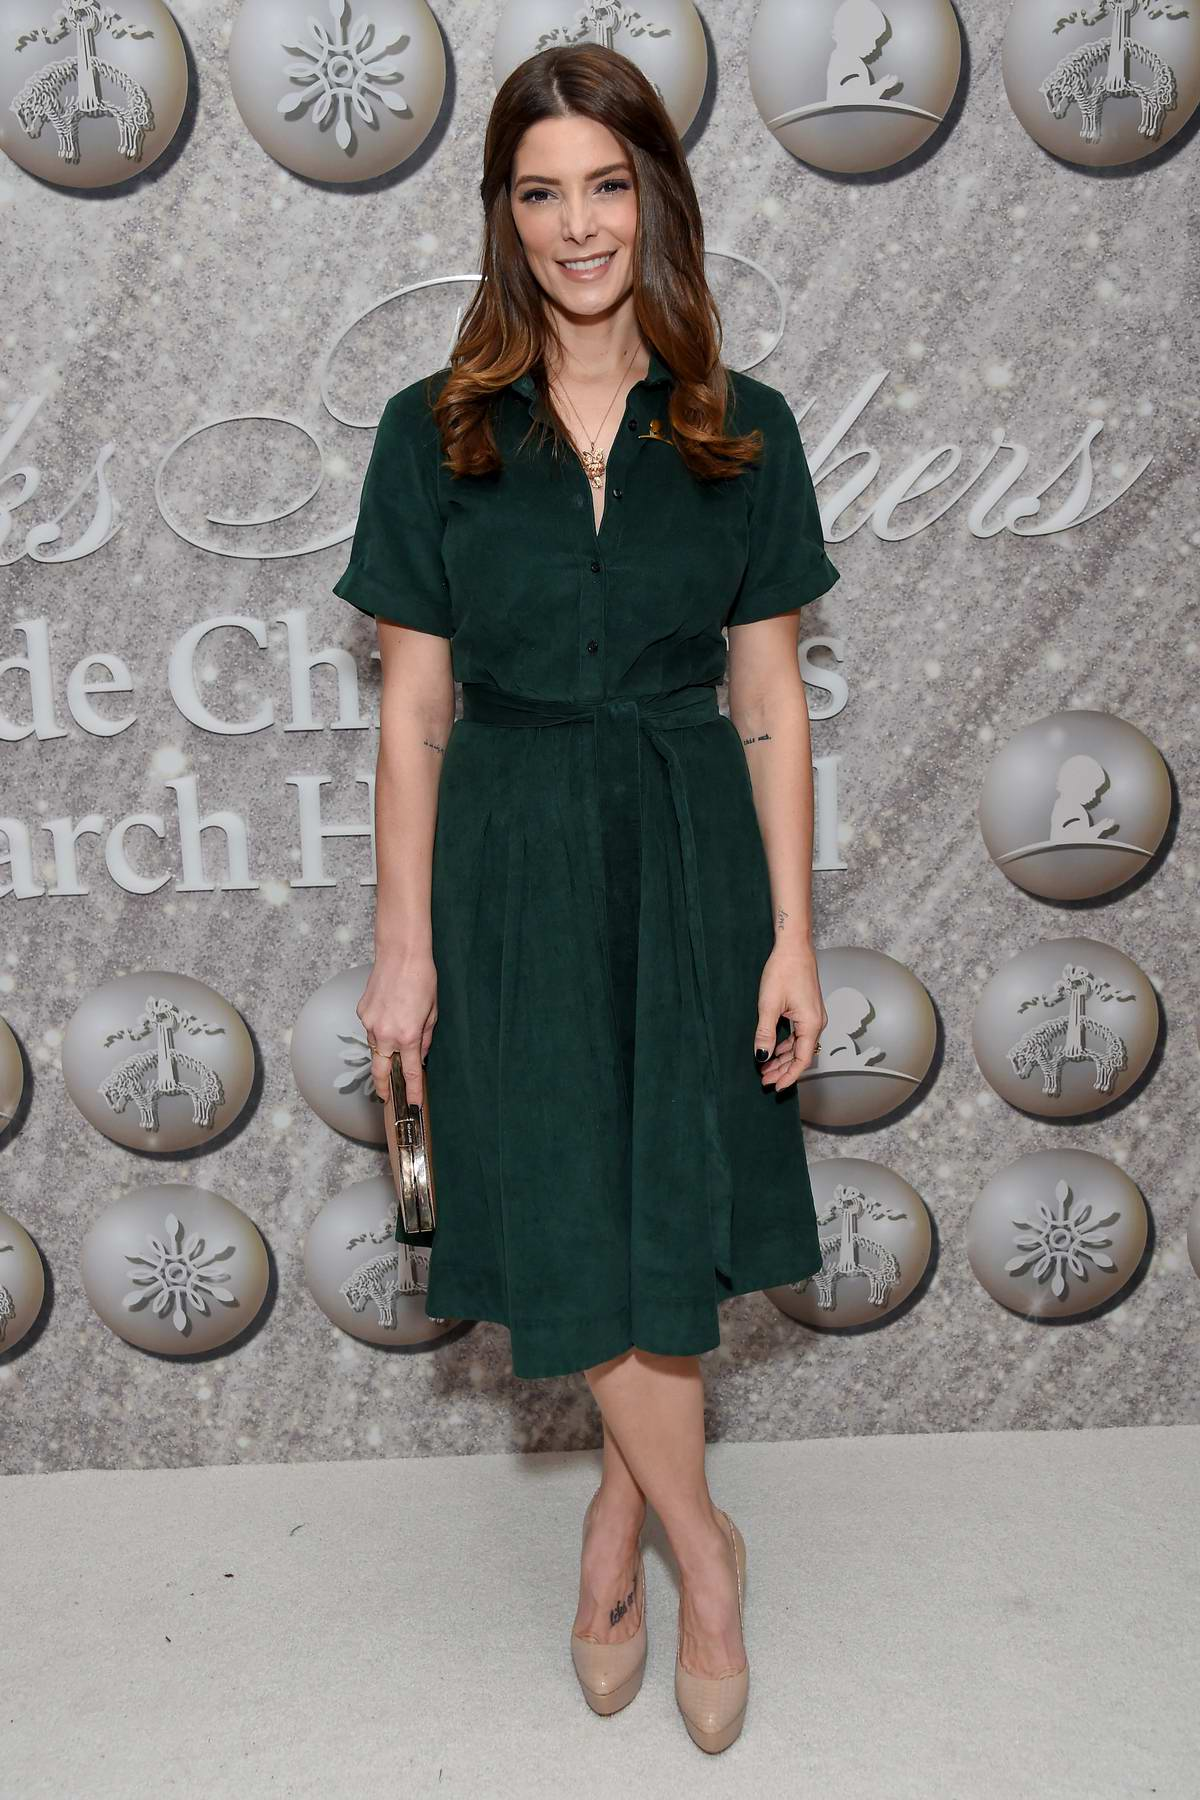 Ashley Greene attends Brooks Brothers Holiday Celebration honoring St. Jude in West Hollywood, Los Angeles